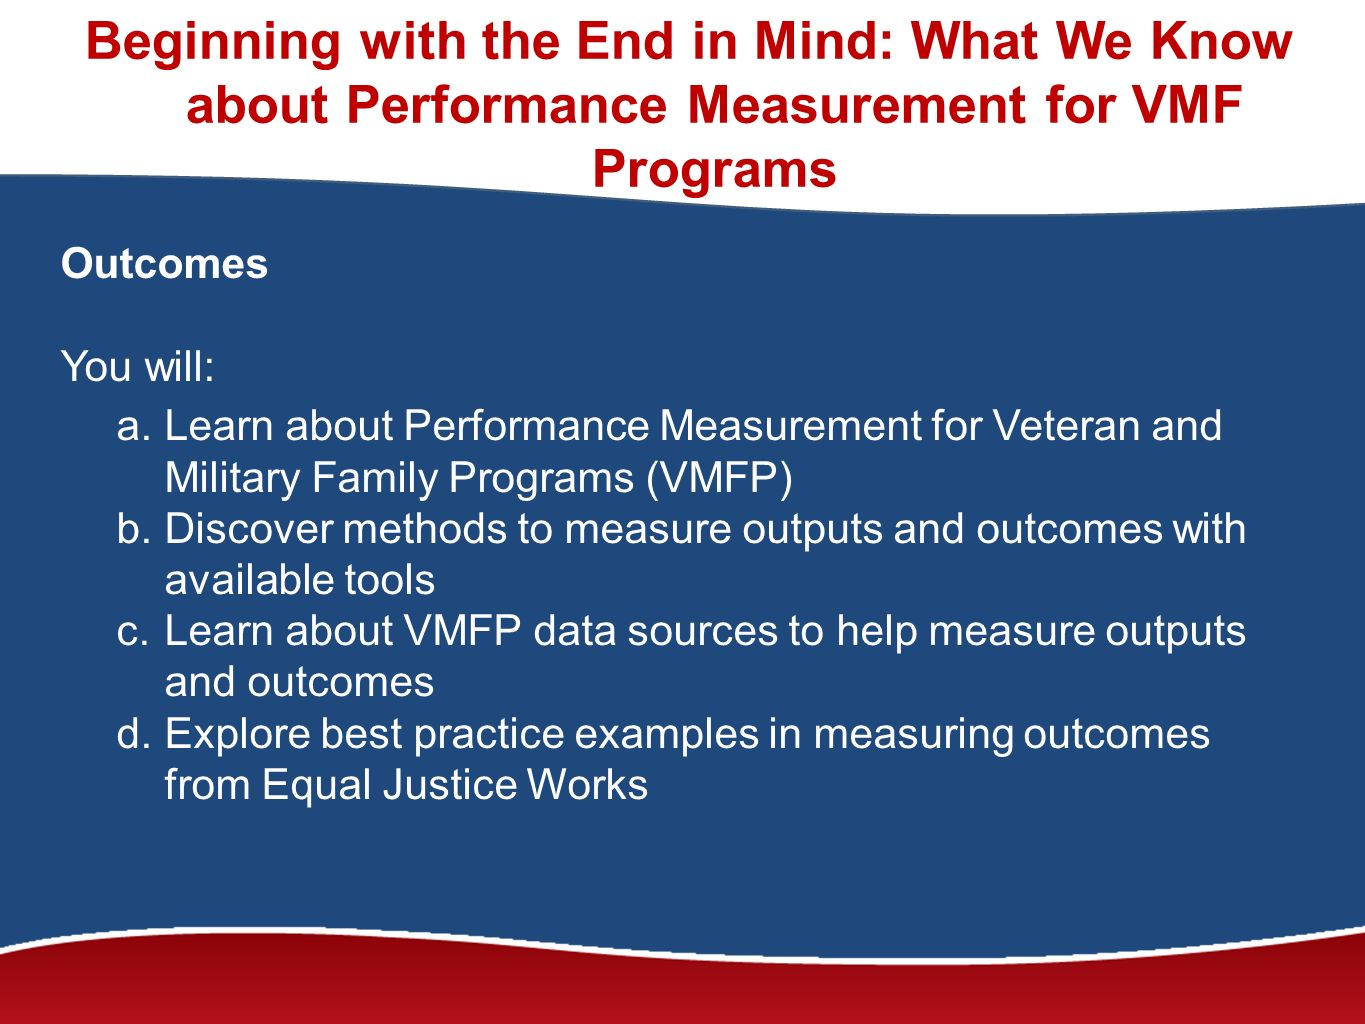 Beginning with the End in Mind: What We Know about Performance Measurement for VMF Programs Outcomes You will: a.Learn about Performance Measurement for Veteran and Military Family Programs (VMFP) b.Discover methods to measure outputs and outcomes with available tools c.Learn about VMFP data sources to help measure outputs and outcomes d.Explore best practice examples in measuring outcomes from Equal Justice Works